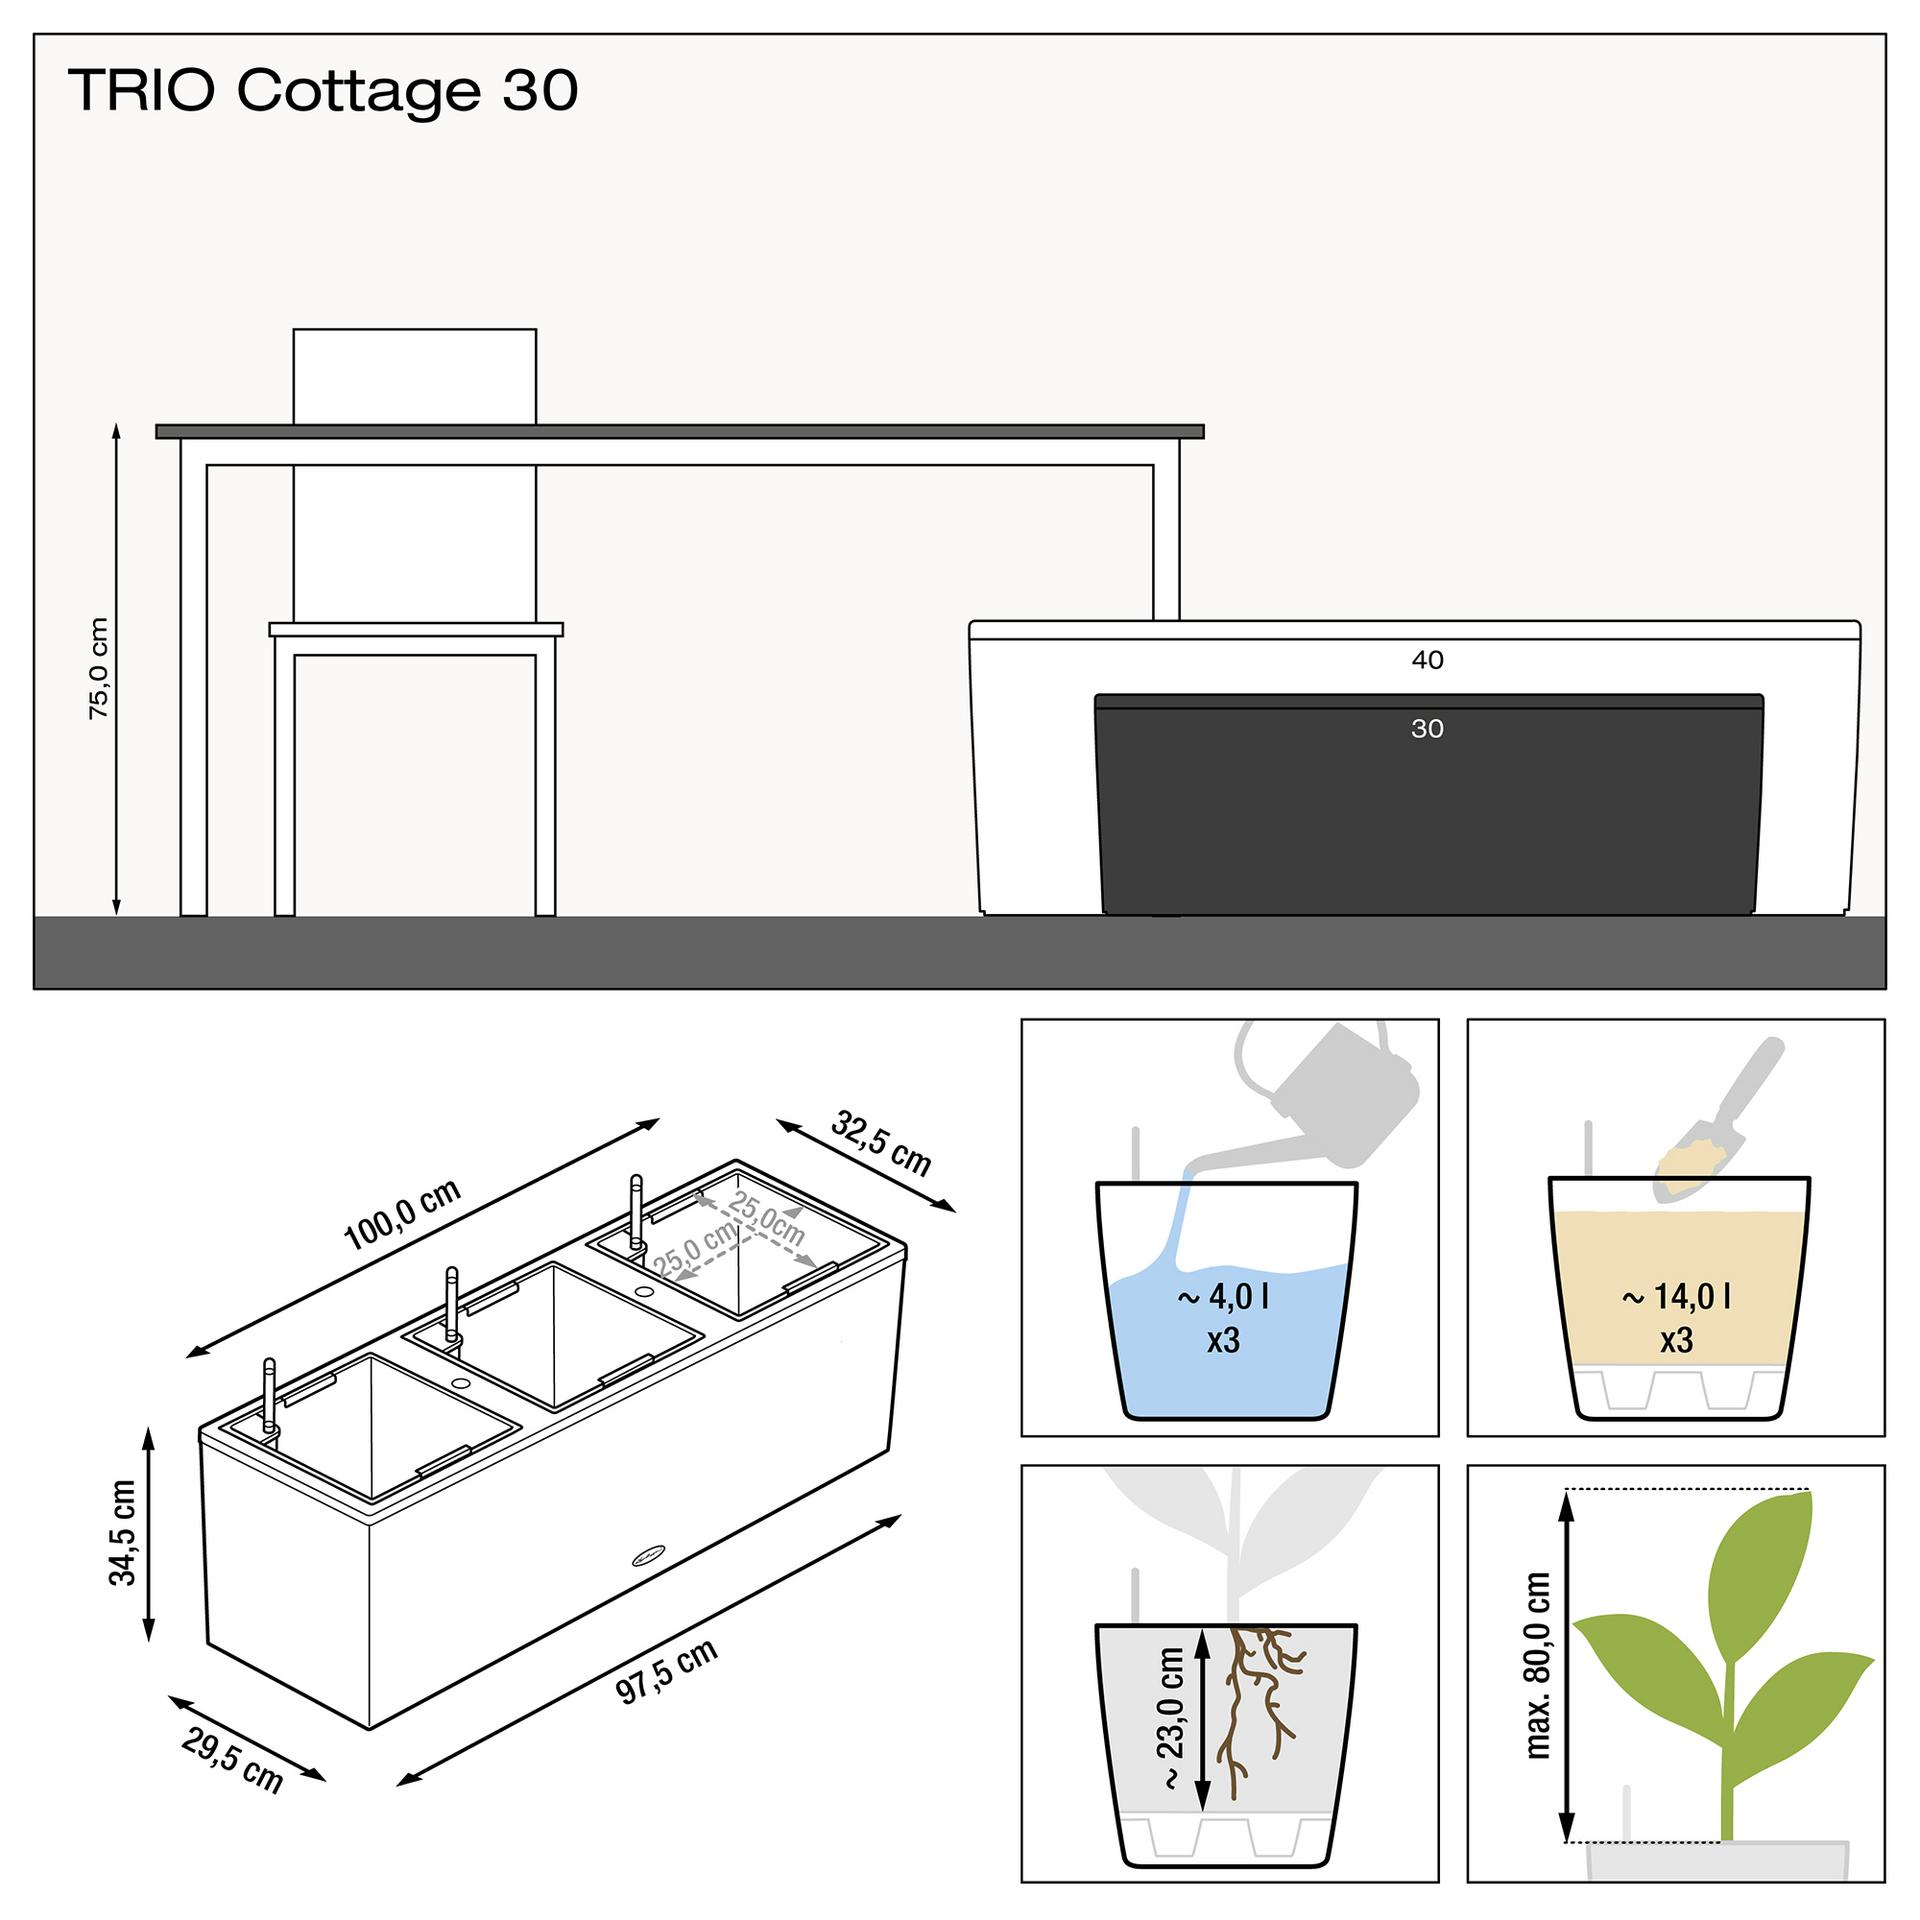 le_trio-cottage30_product_addi_nz